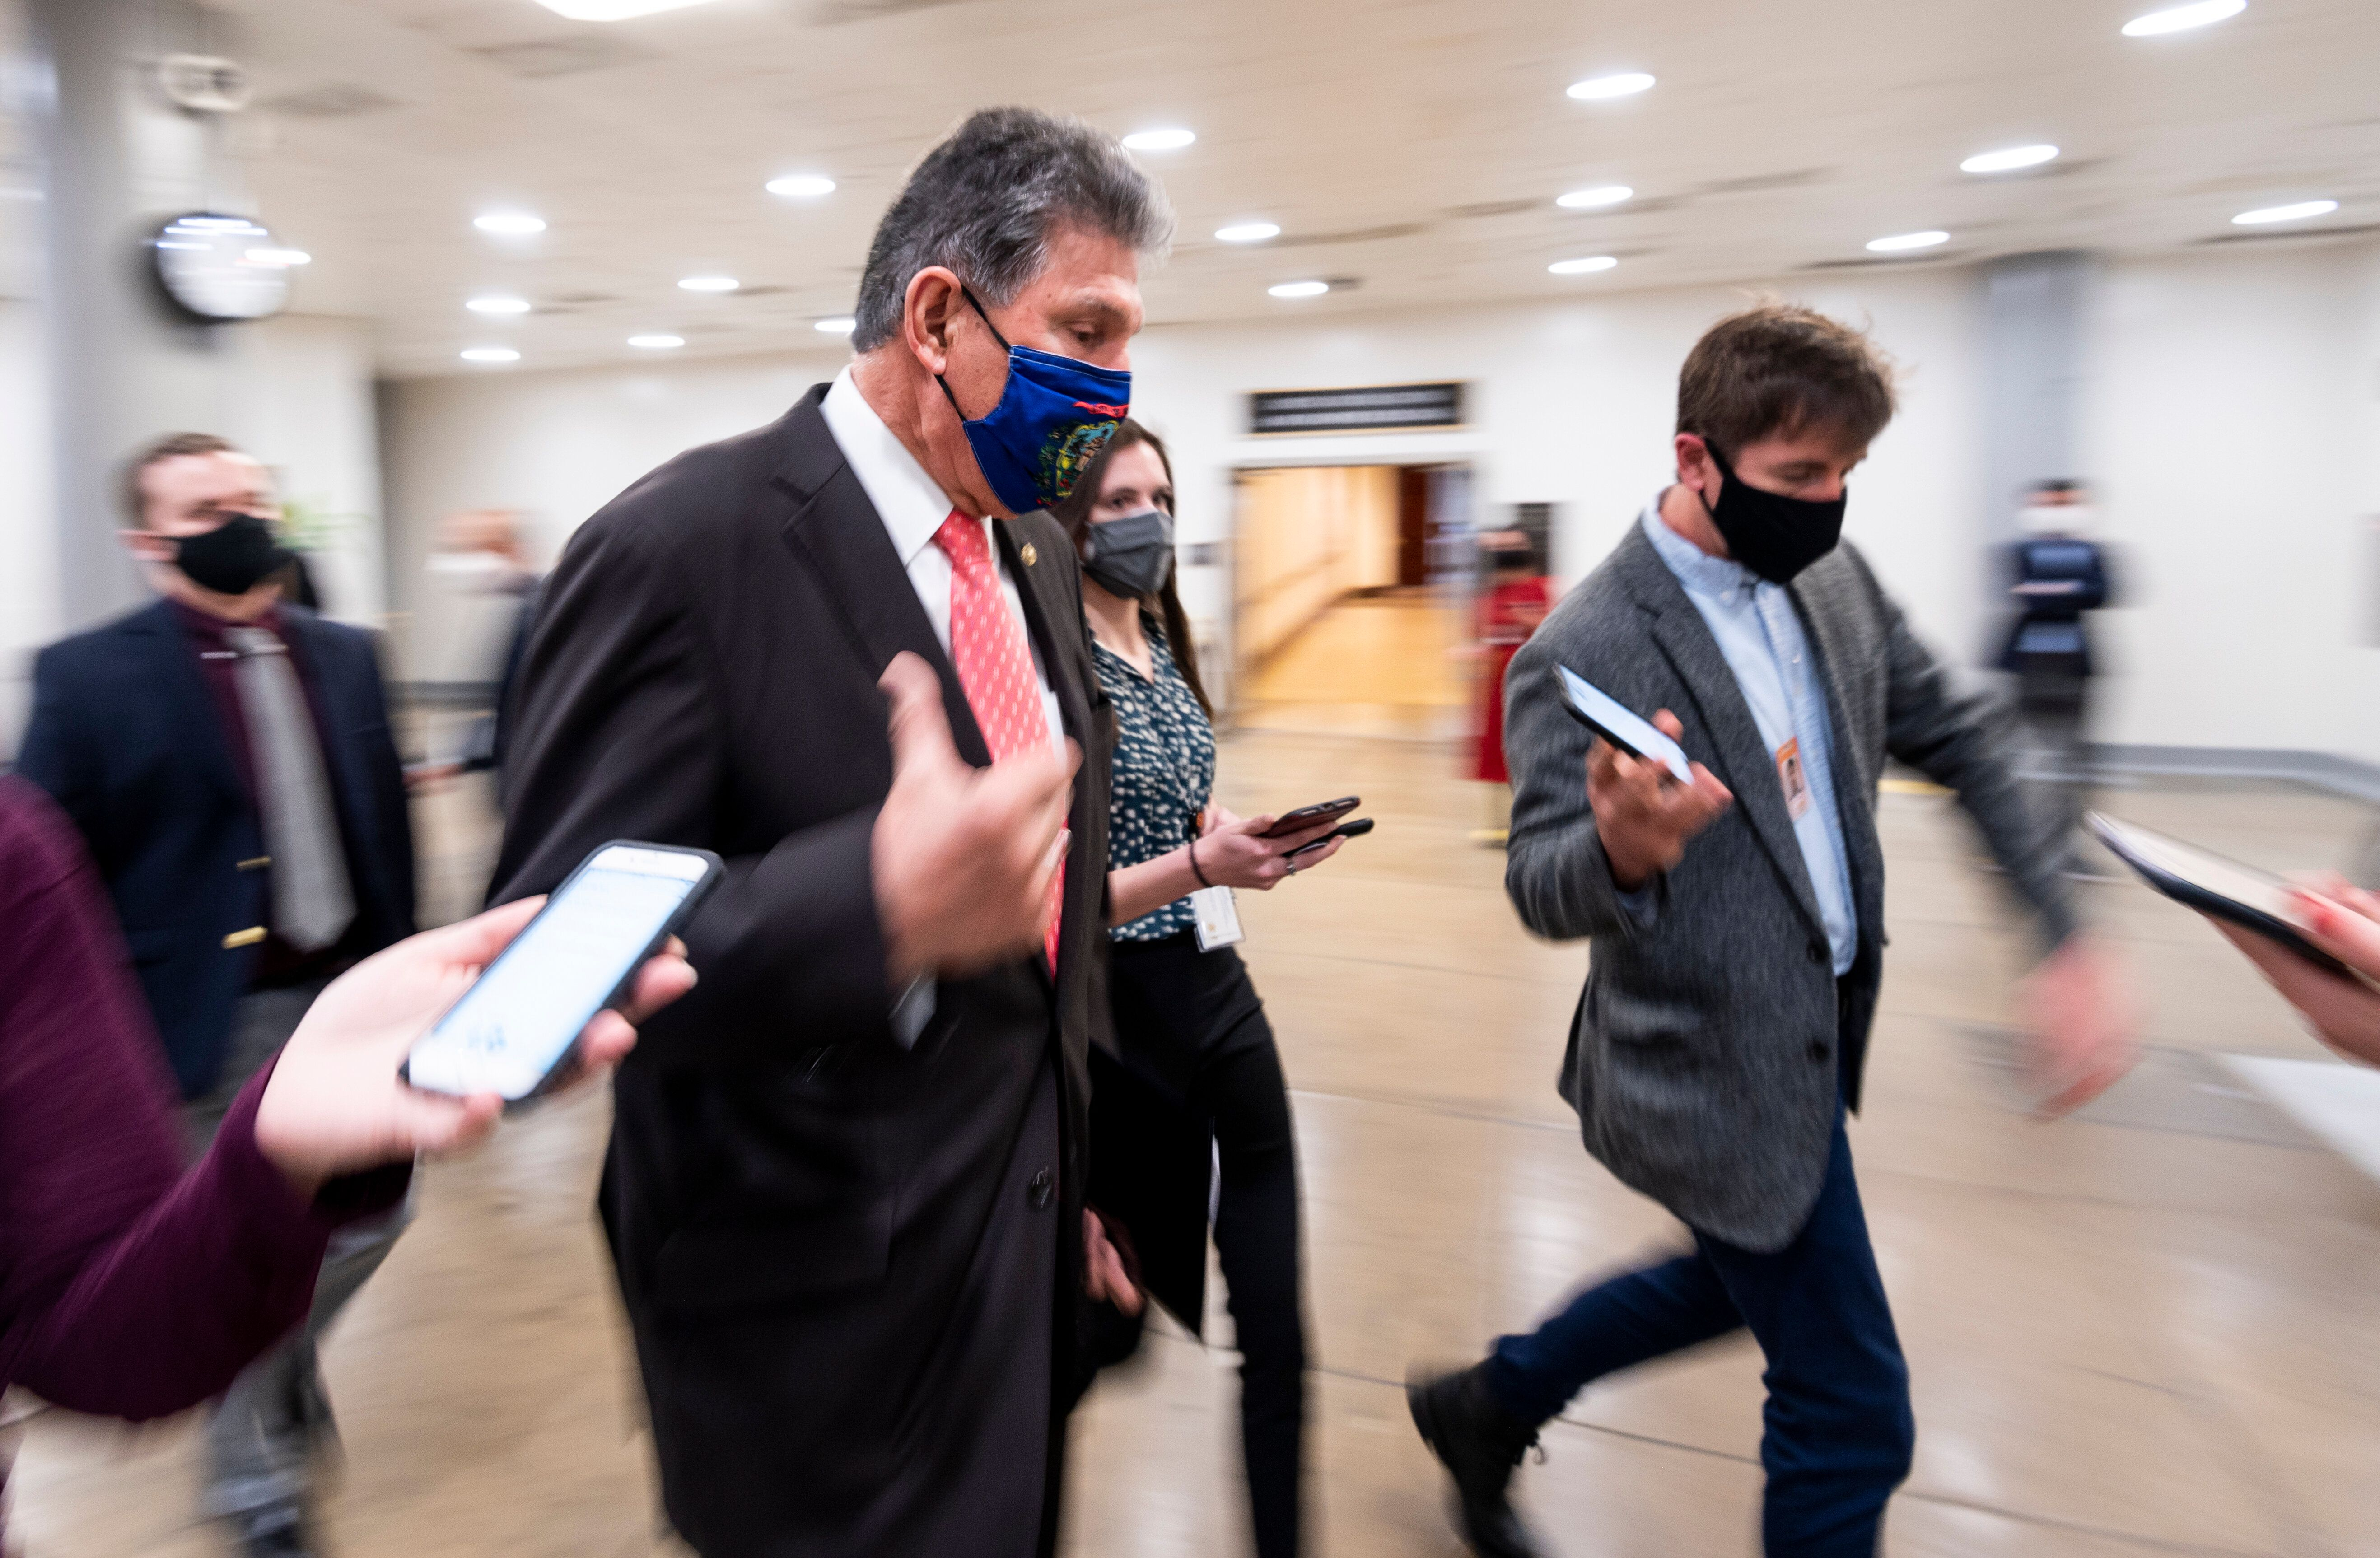 Sen. Joe Manchin (D-W.Va.) speaks with reporters in the Senate subway as he arrives for a vote in the Capitol on Wednesday, M